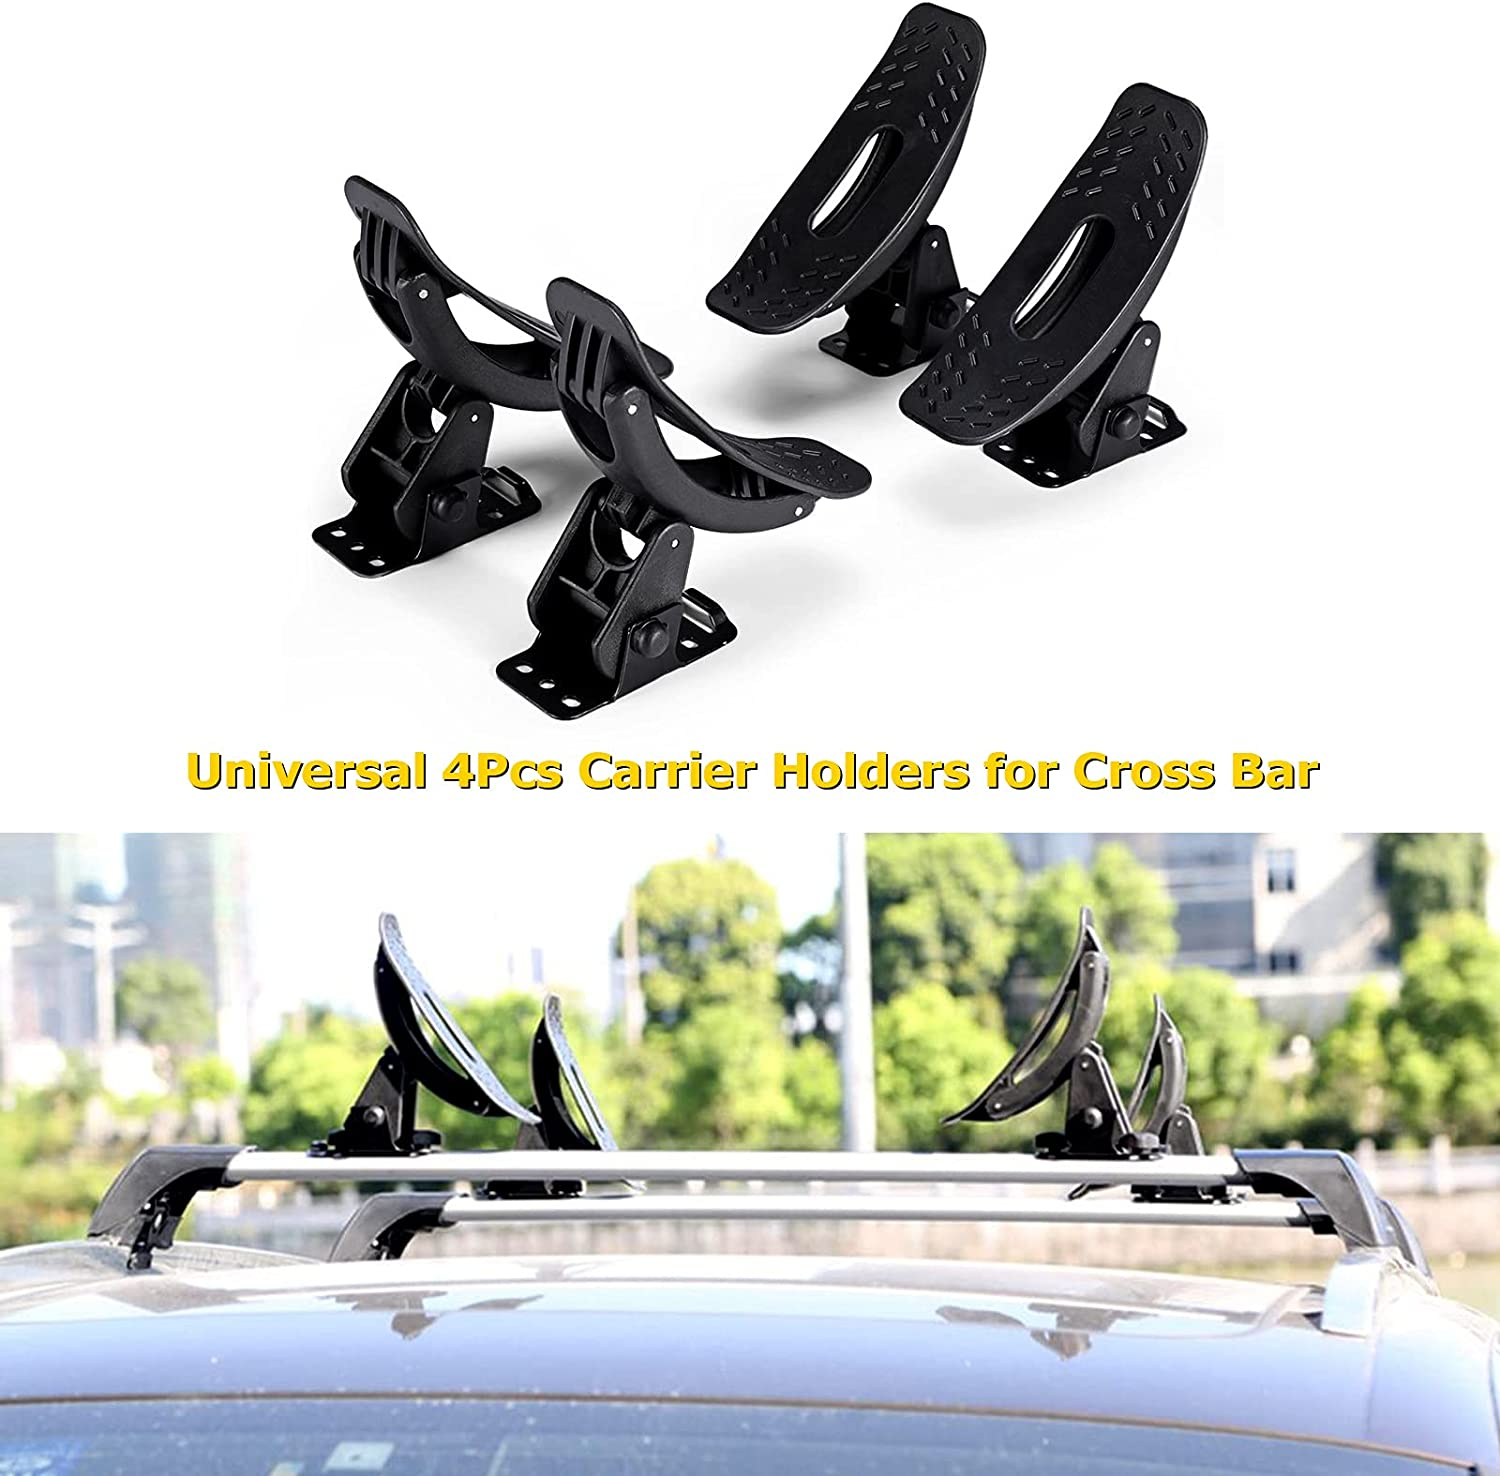 AUXMART Kayak Free shipping All items in the store Roof Racks Universal Mount Saddles Carrier R